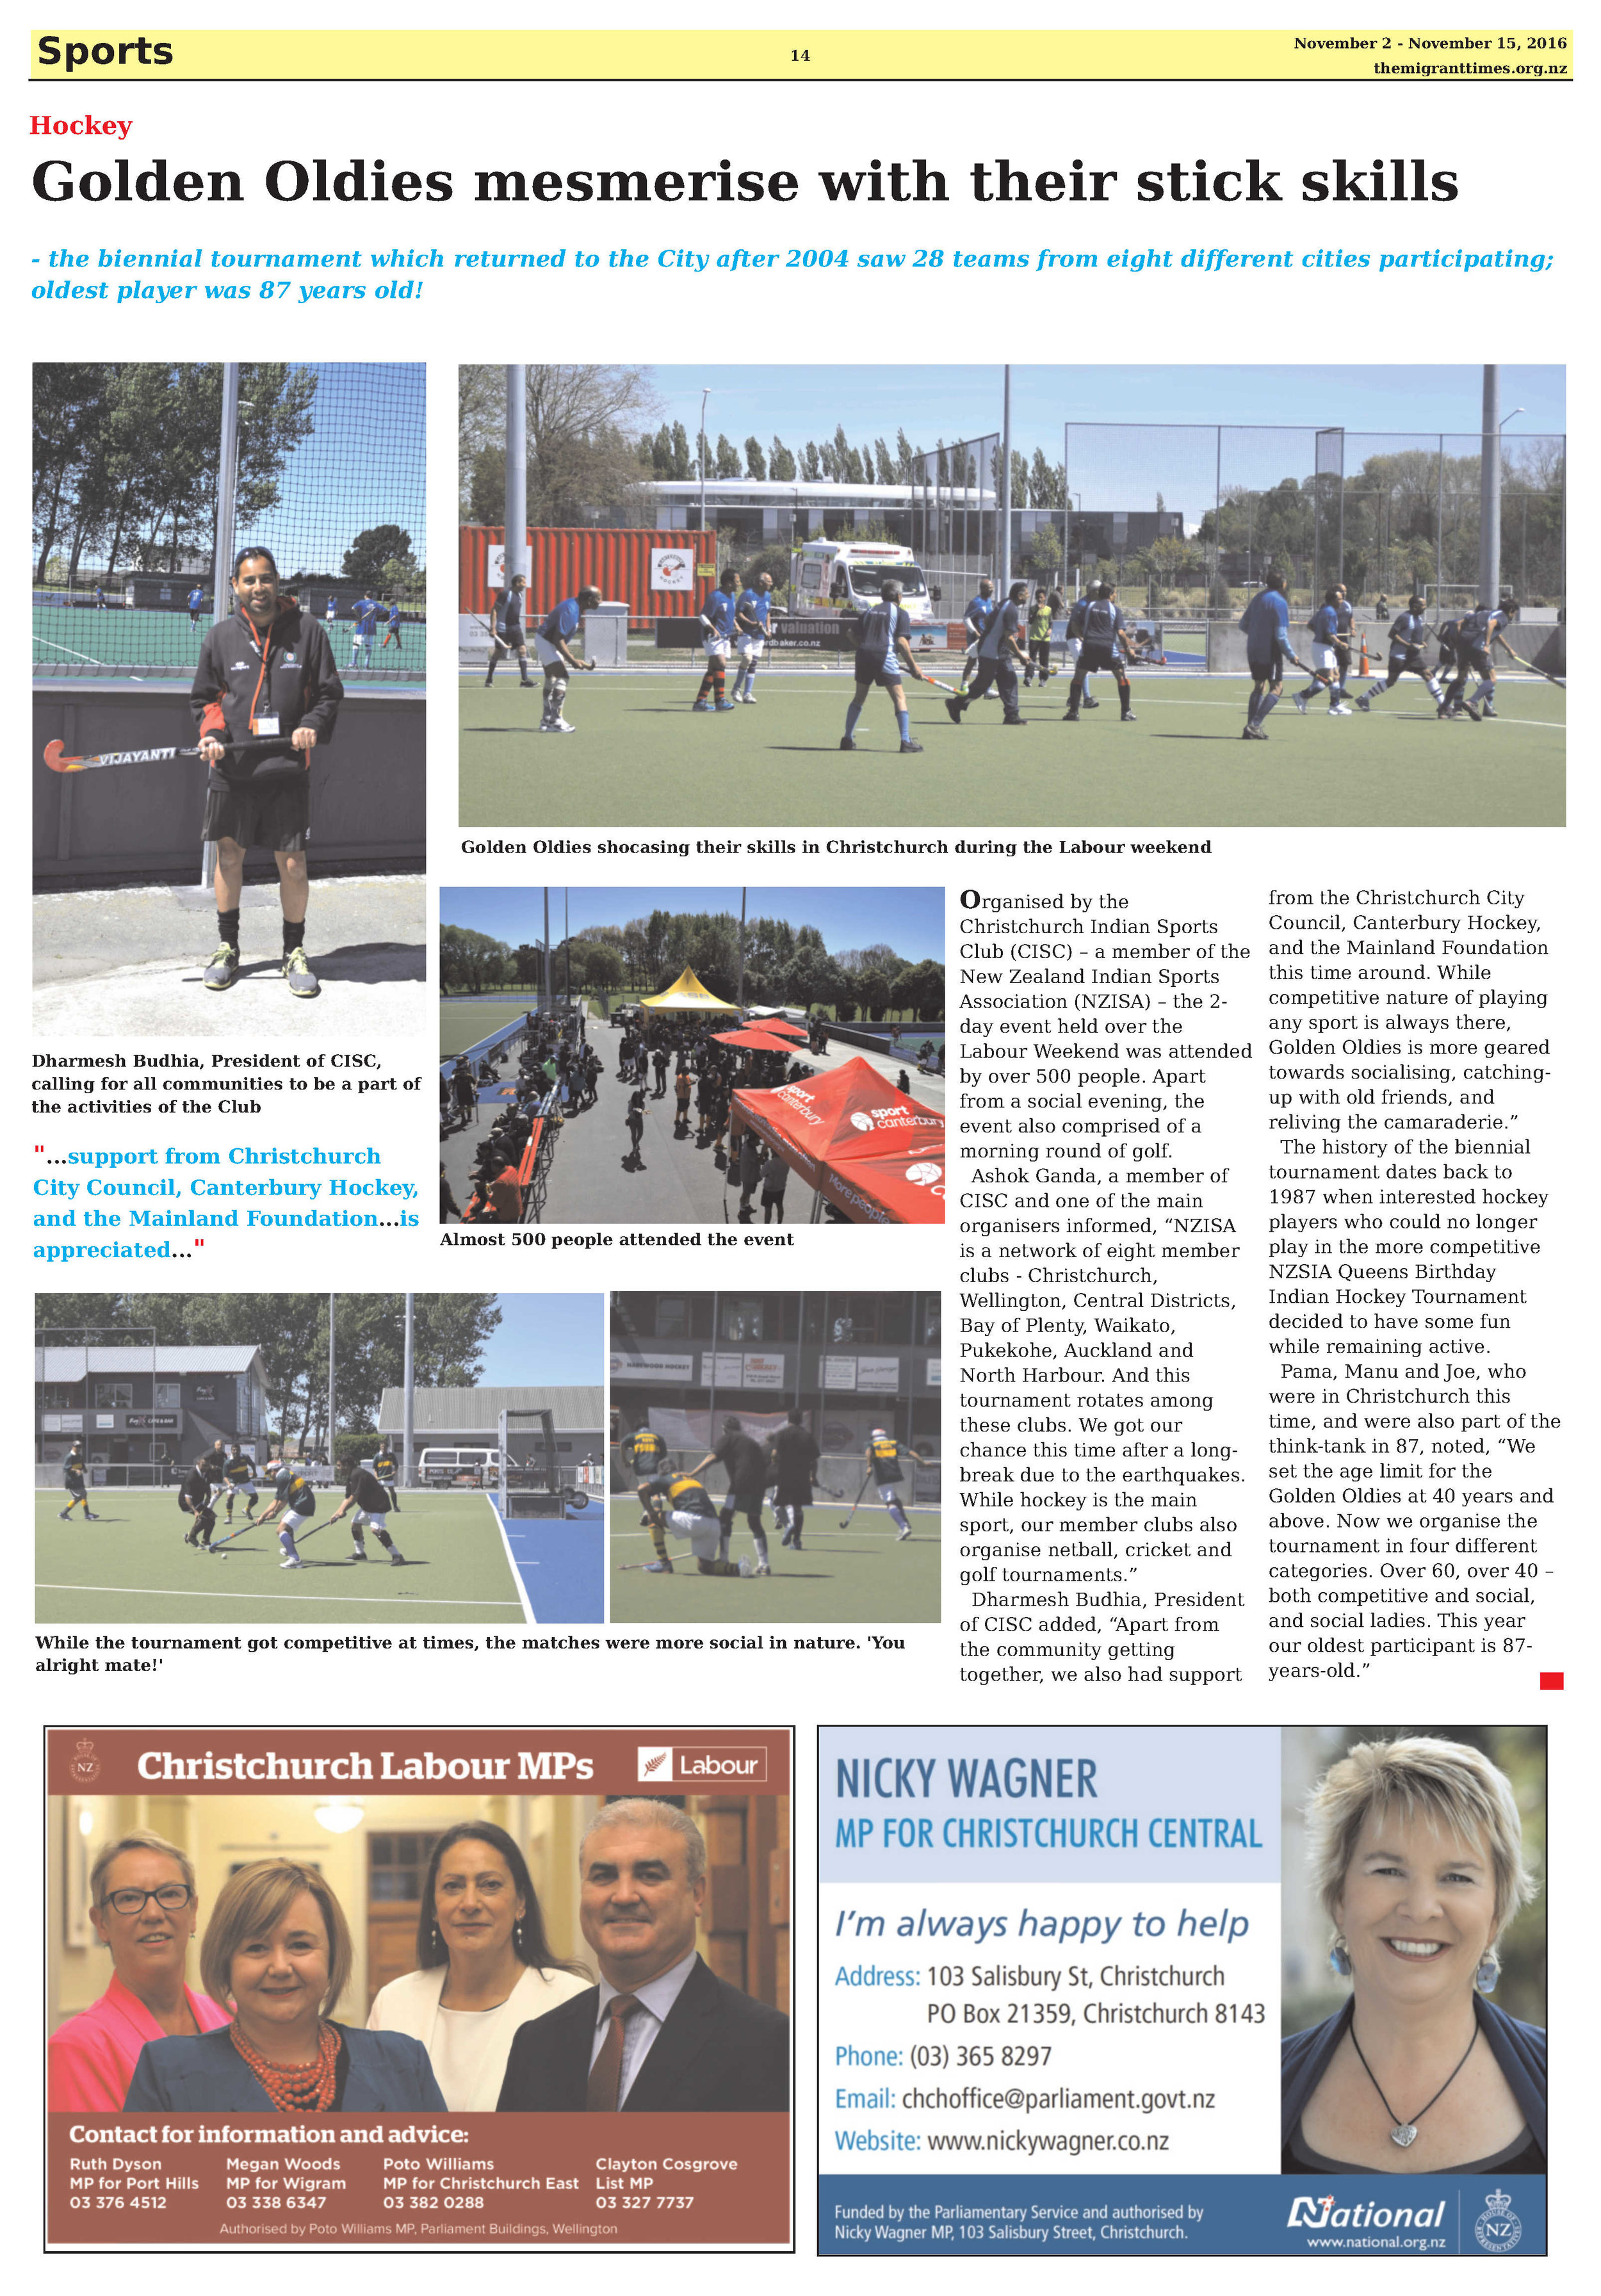 Click on the image to enlarge and read the printed version of the story